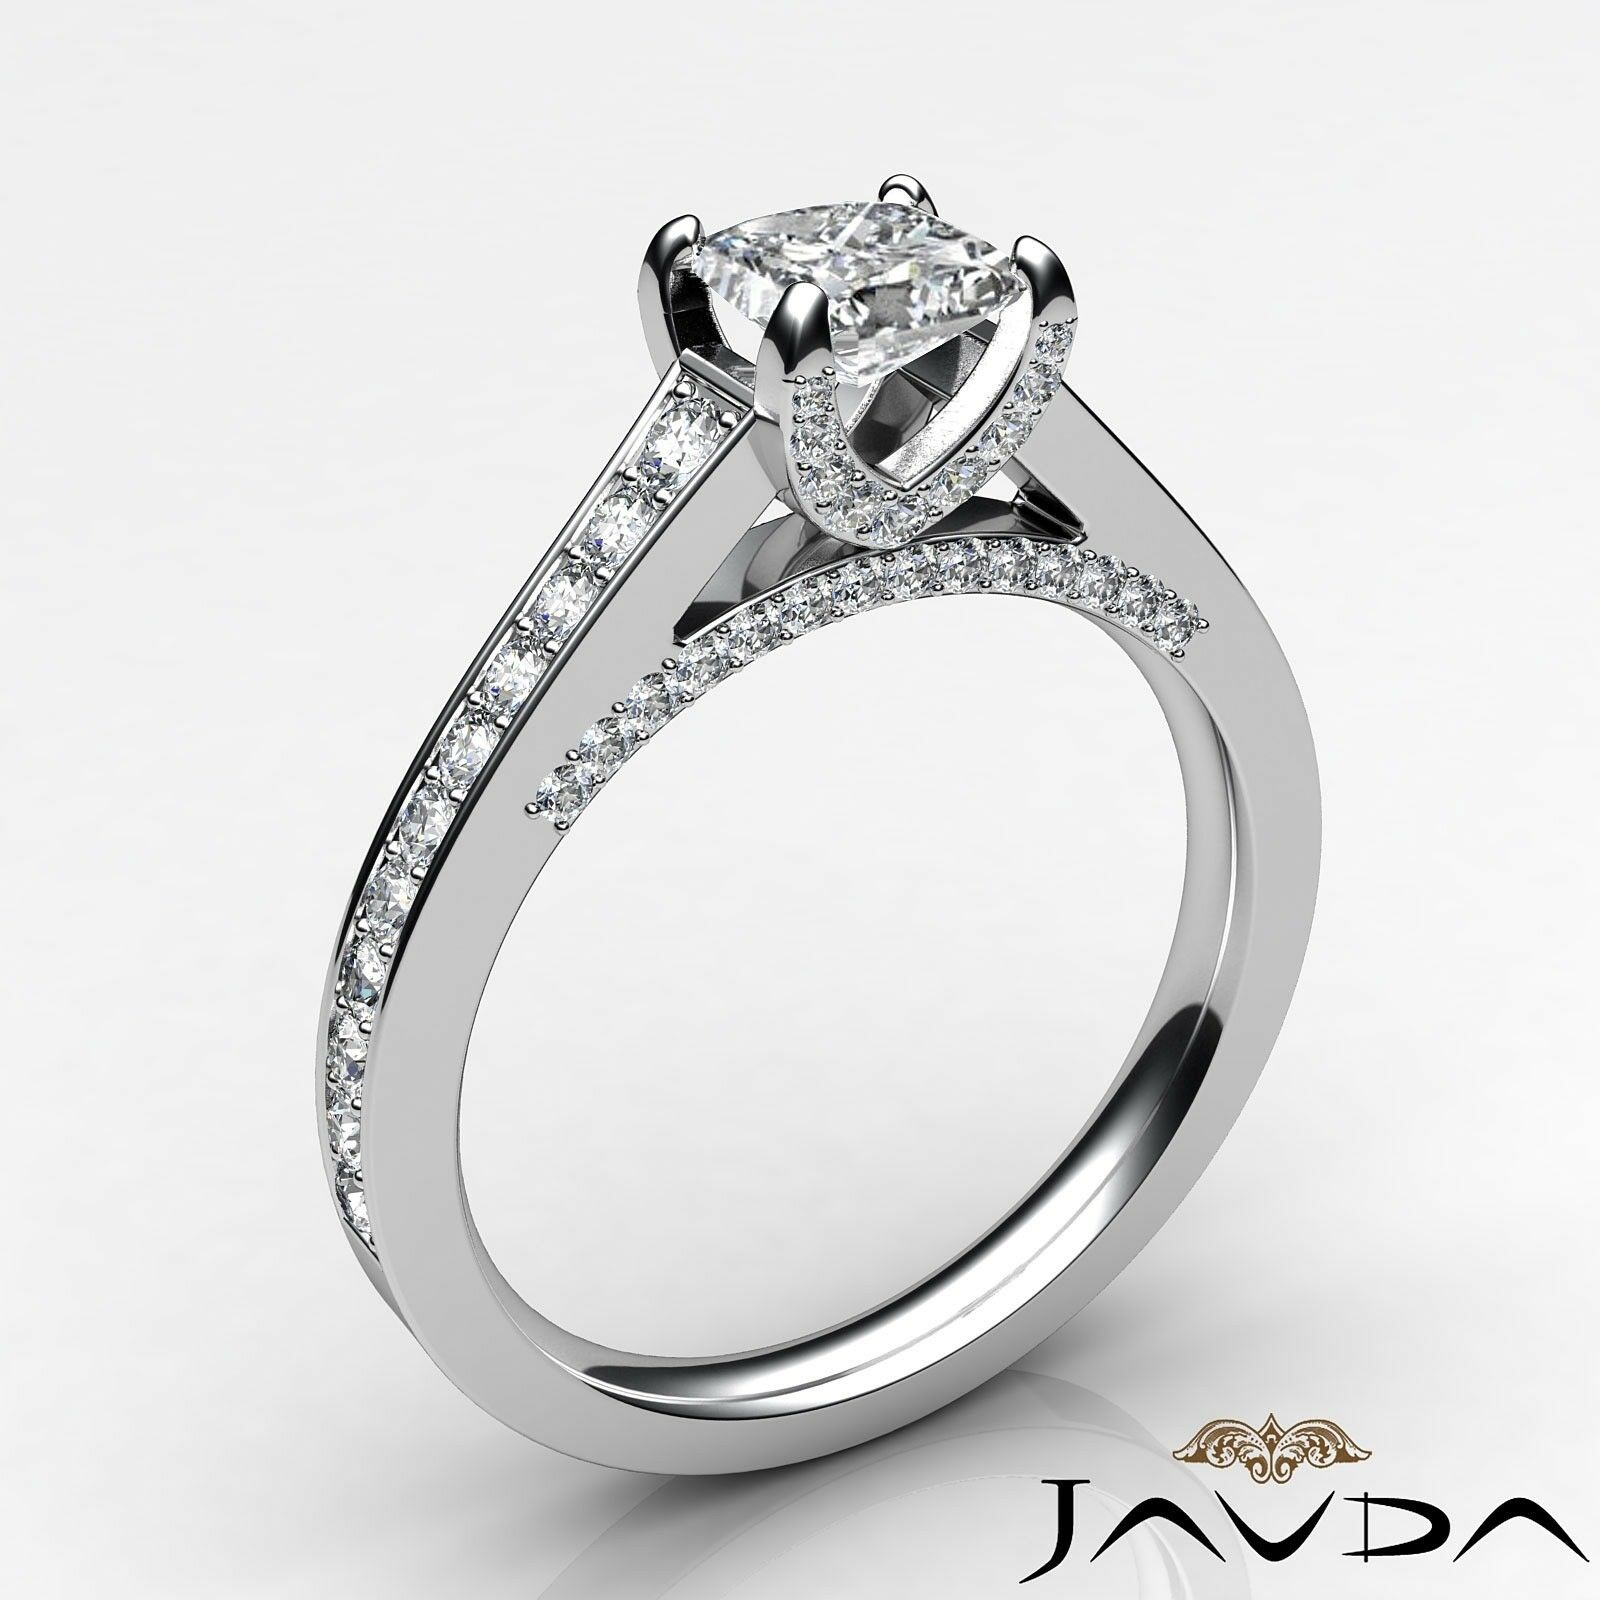 1.46ctw Tapered Pave Princess Diamond Engagement Ring GIA G-VS2 White Gold Rings 1